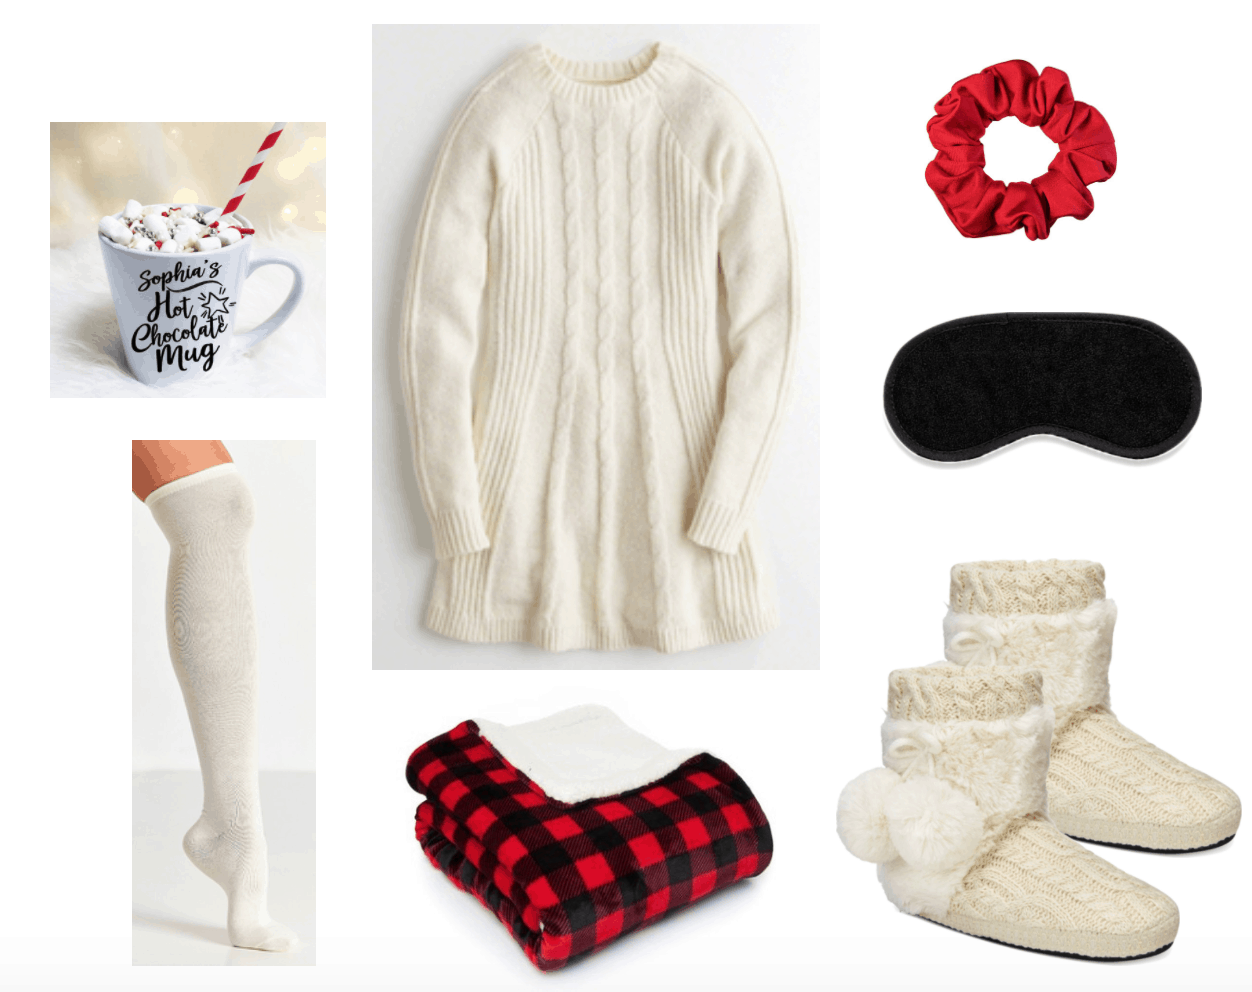 Cozy sweater dress outfit with slippers + socks for relaxing.